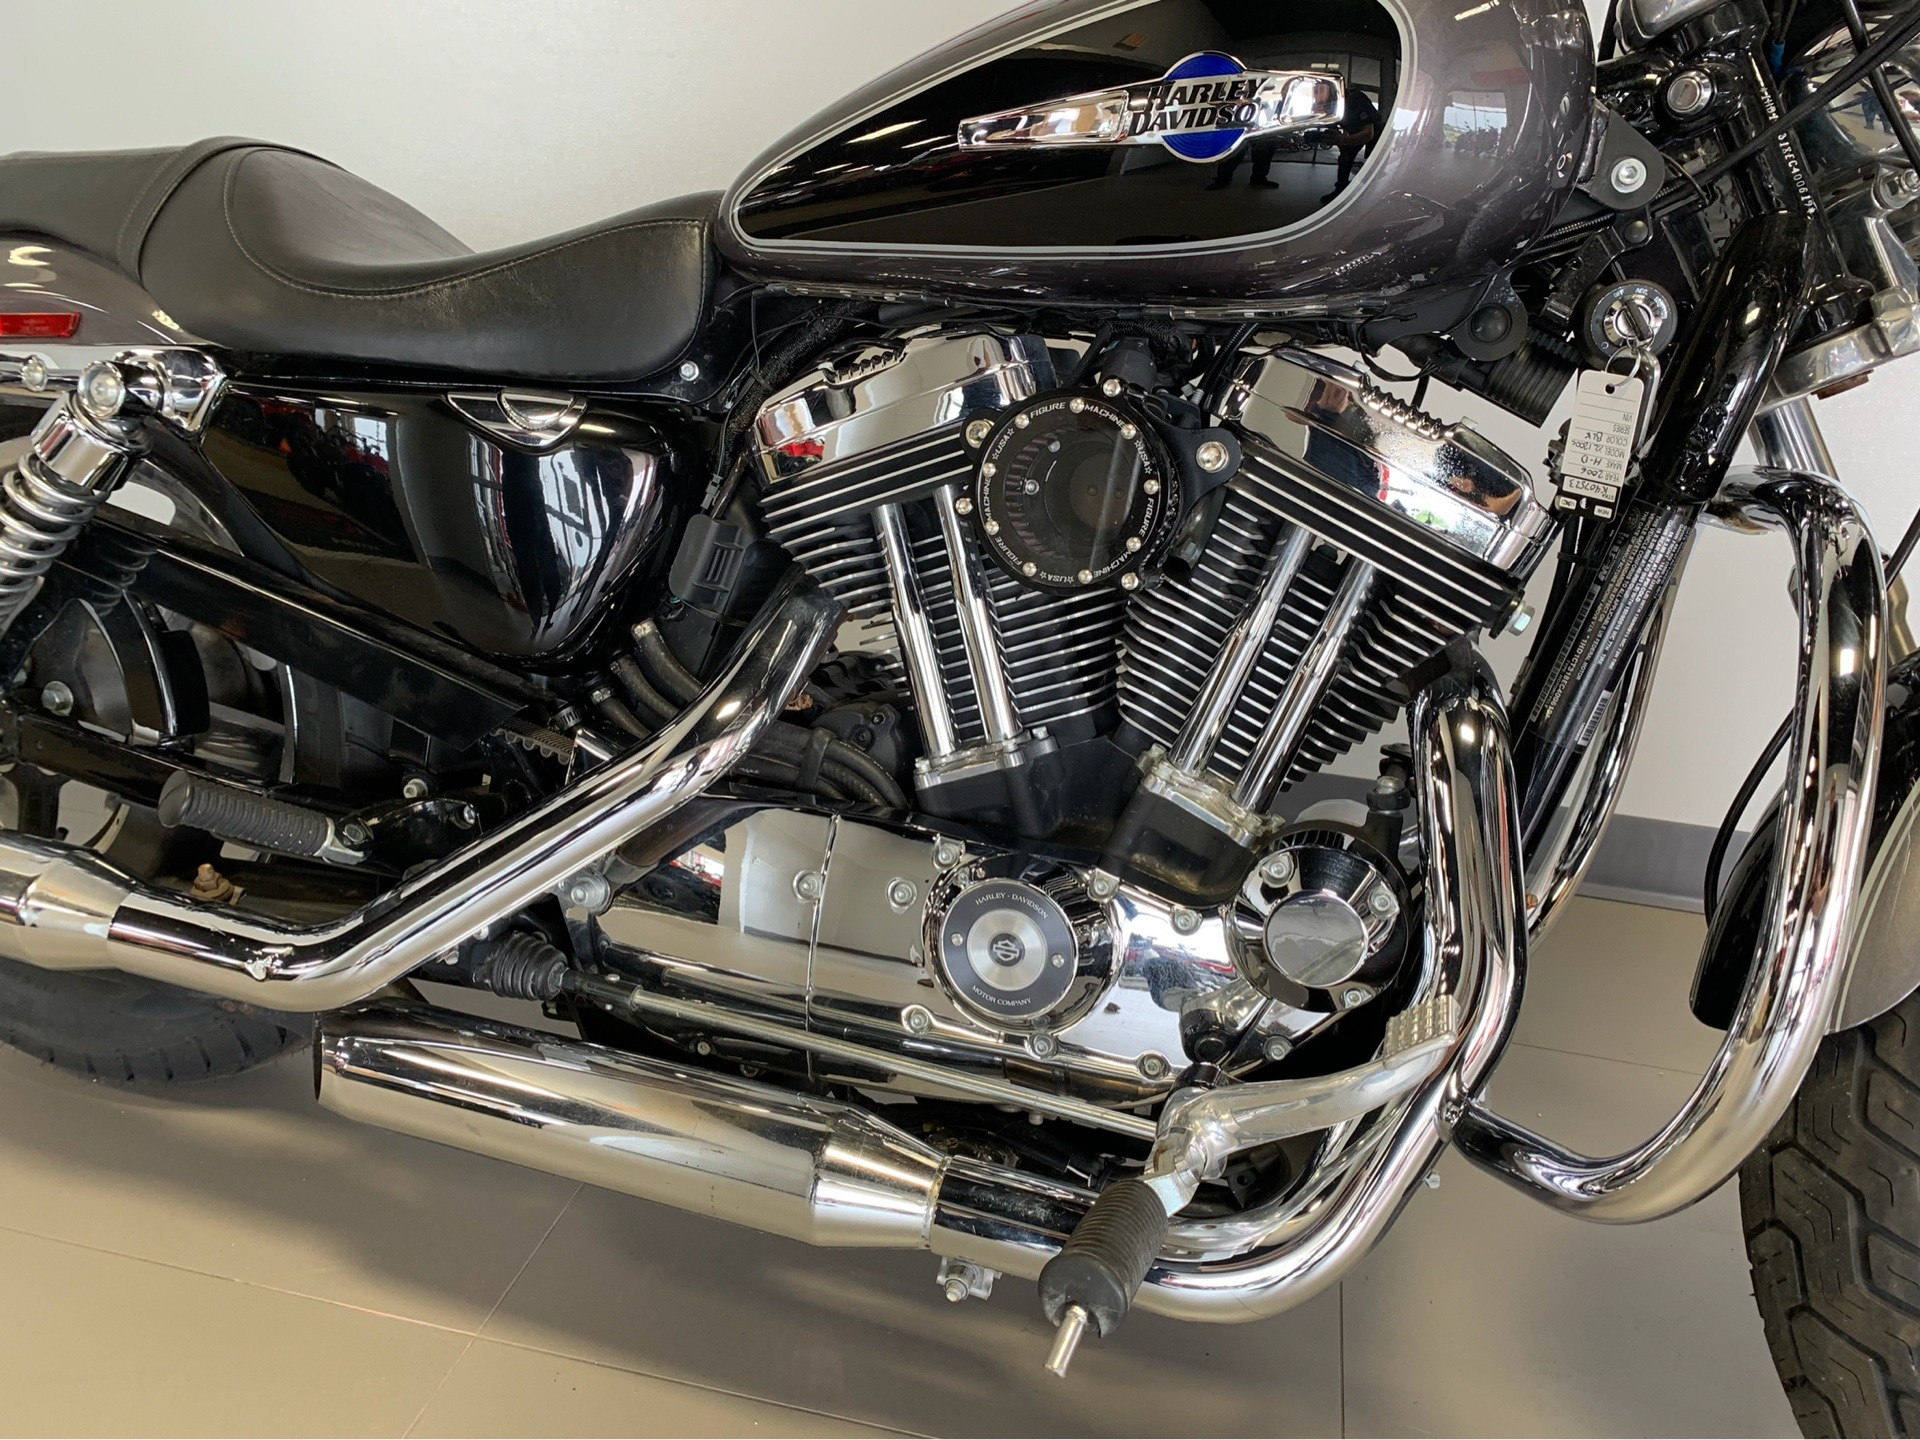 2014 Harley-Davidson 1200 Custom in Springfield, Missouri - Photo 14